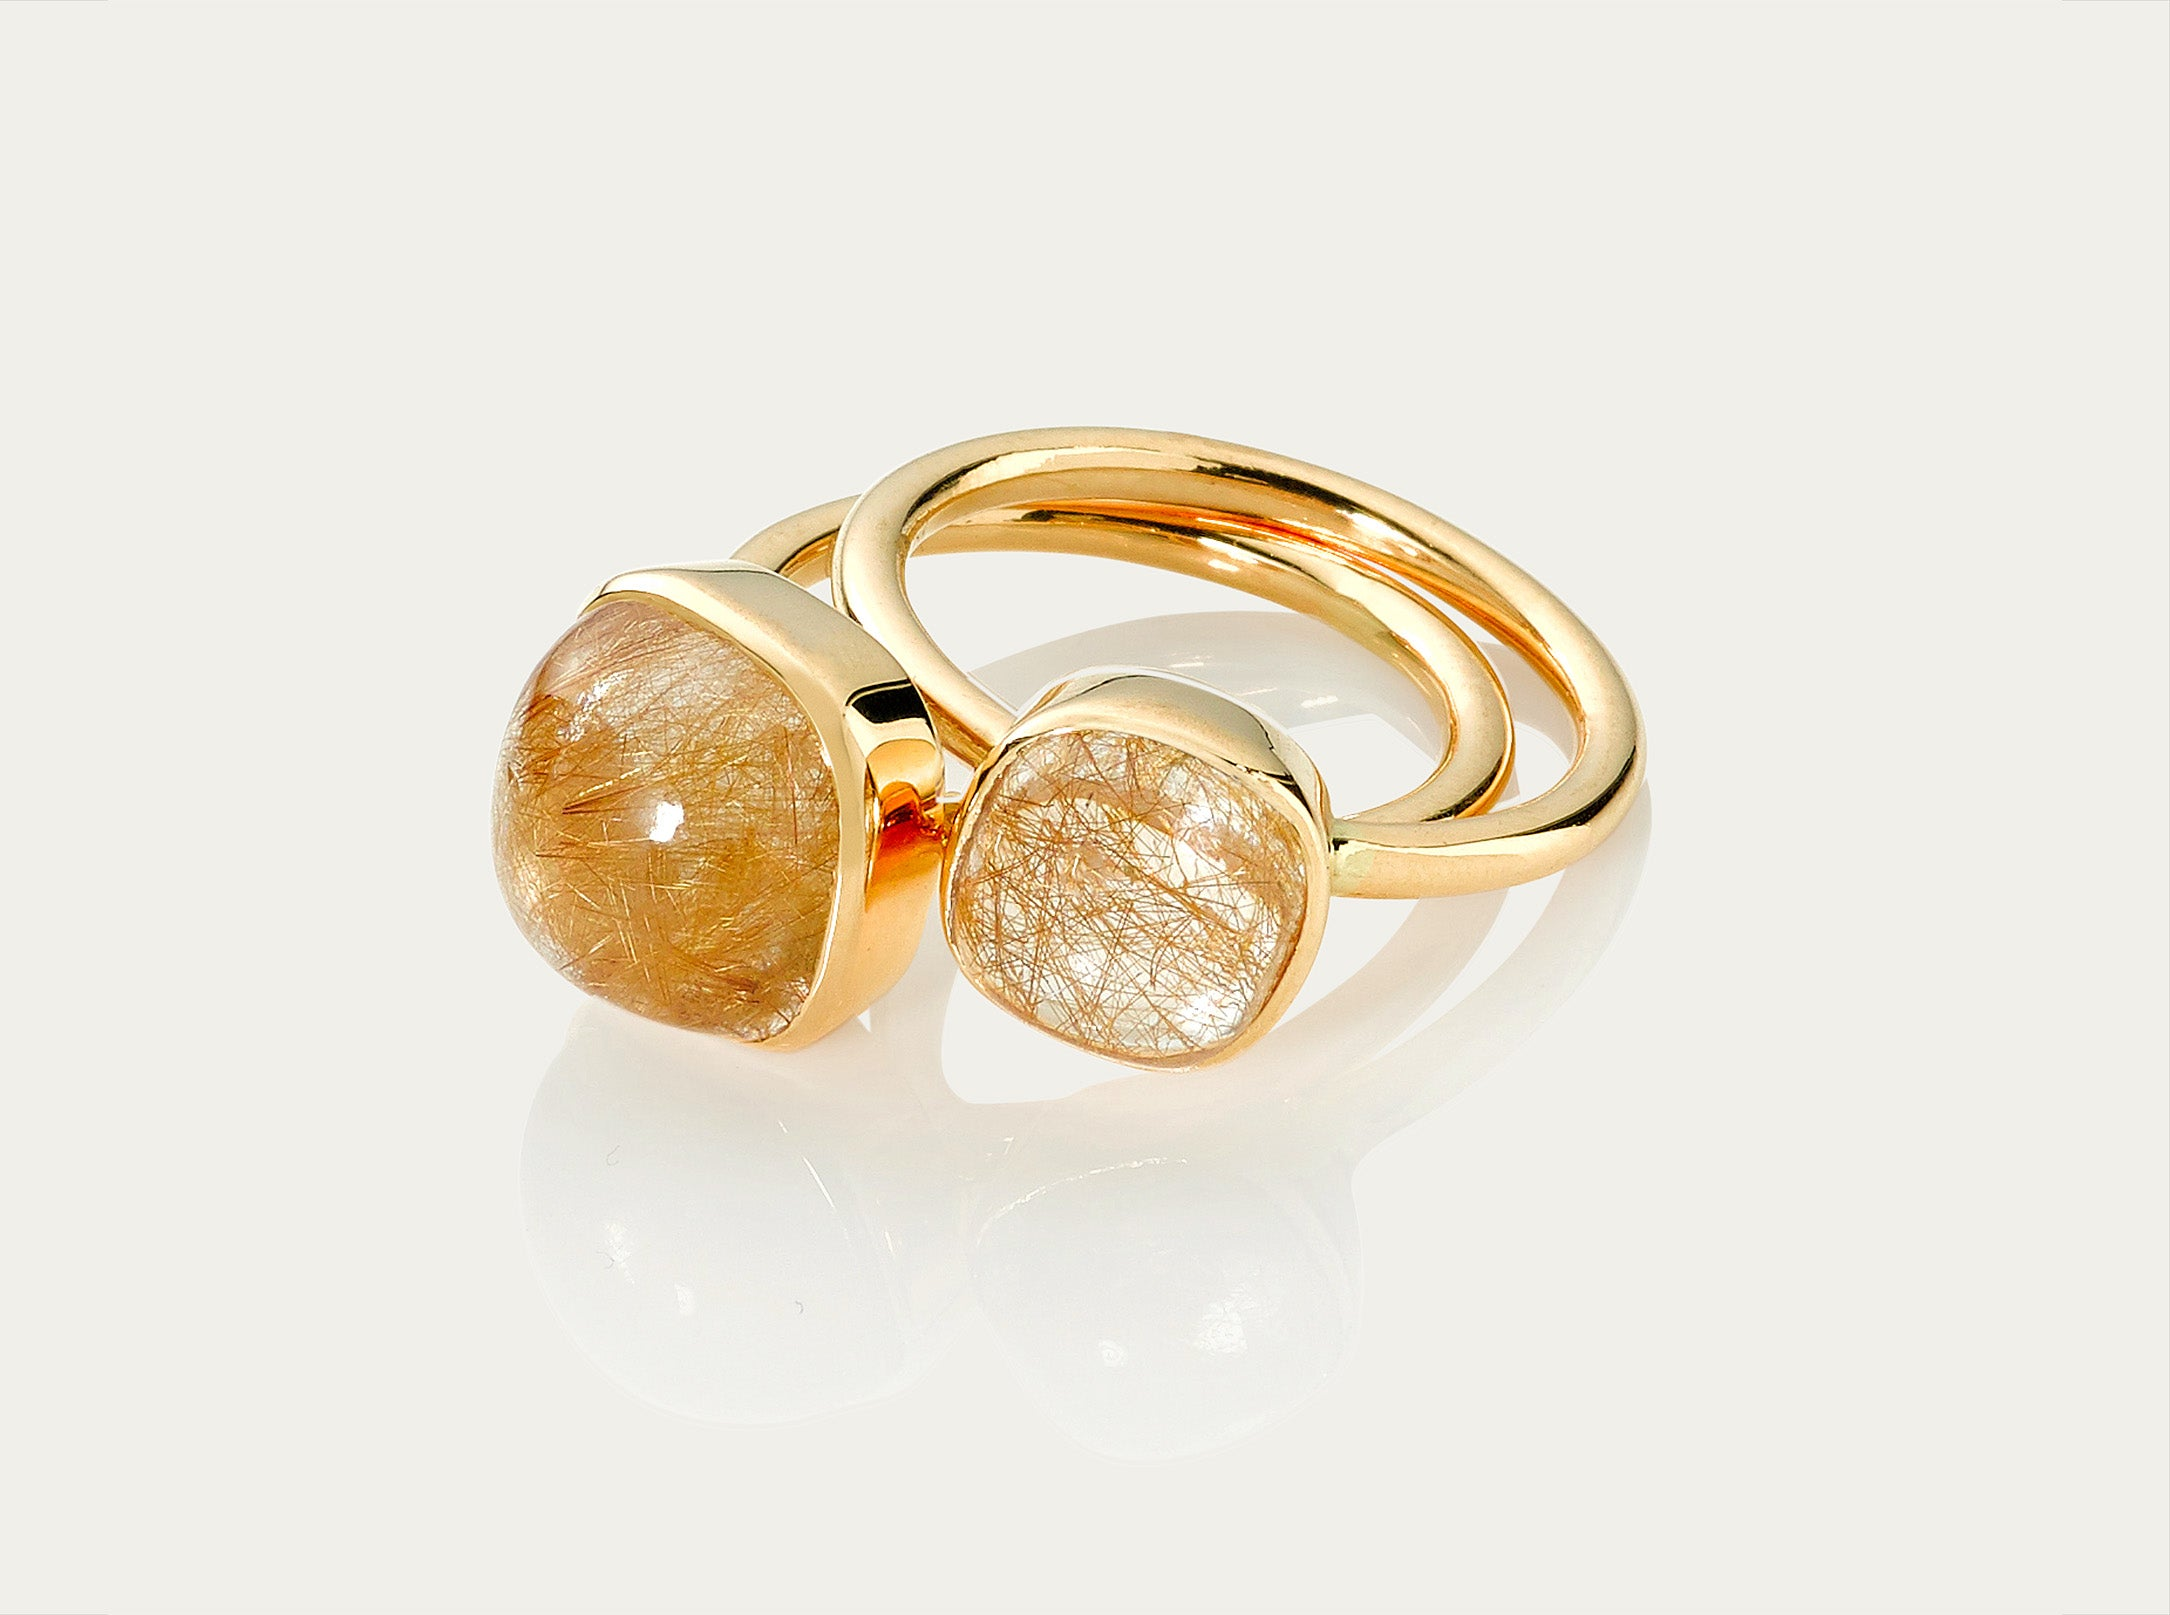 Bobo Ring Cabochon - Golden Rutile 10mm